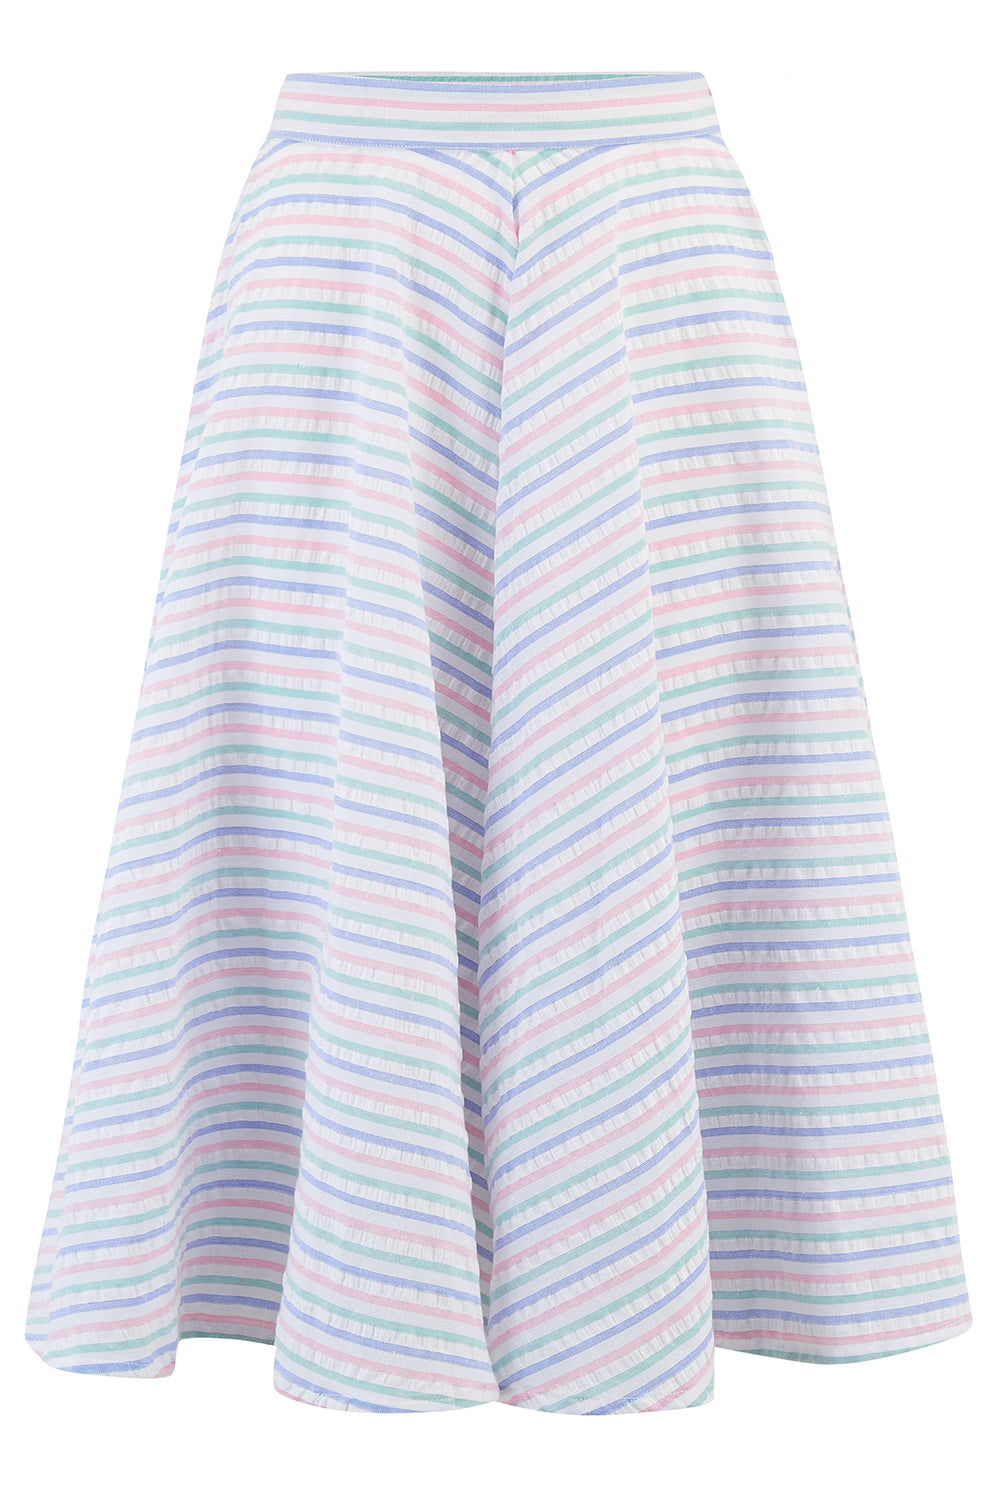 "Rock n Romance **Sample Sale** ""Swing Skirt"" in Pastel Stripe Cotton Seersucker, Authentic 1950s Vintage Style - RocknRomance Clothing"